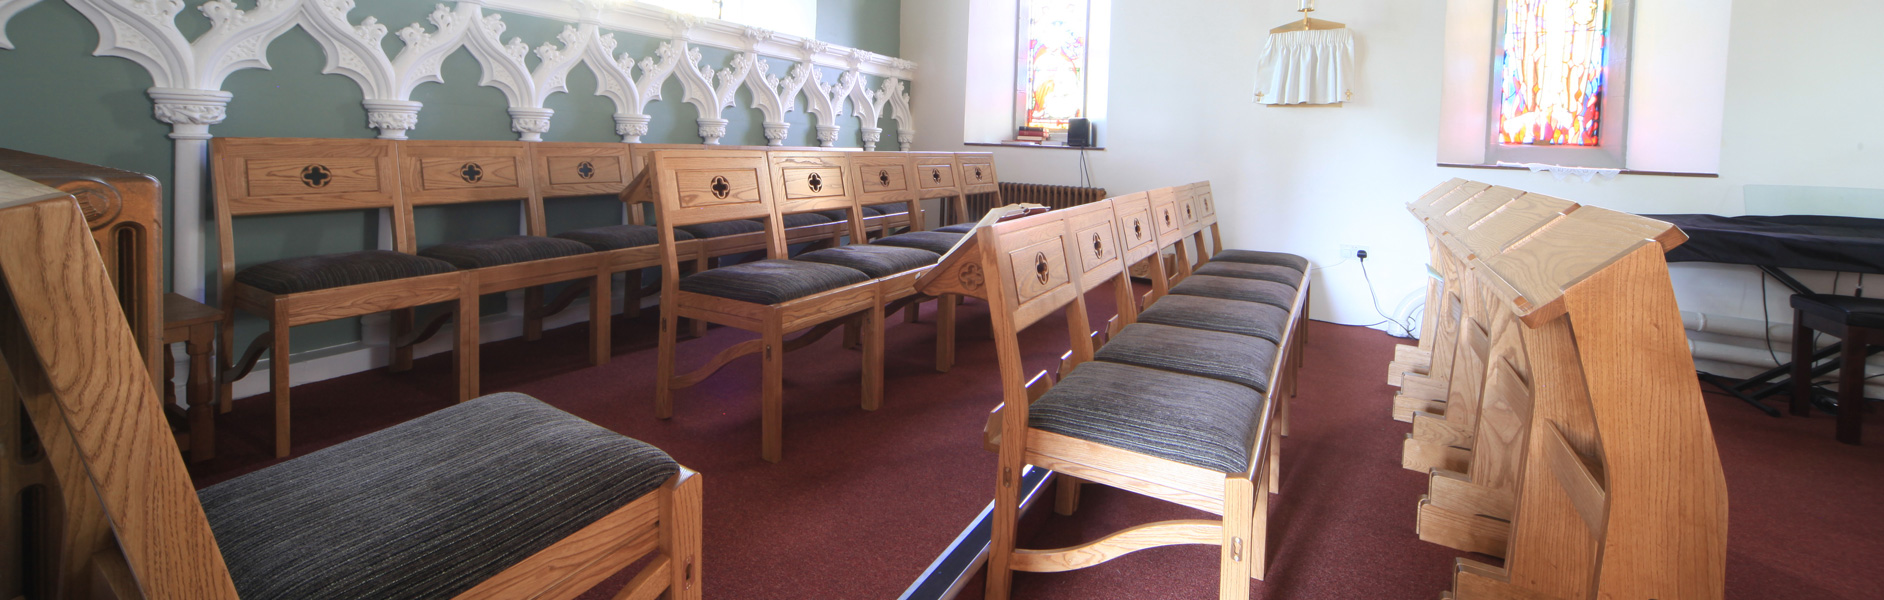 ICS chairs in St. Matthew's Chadderton